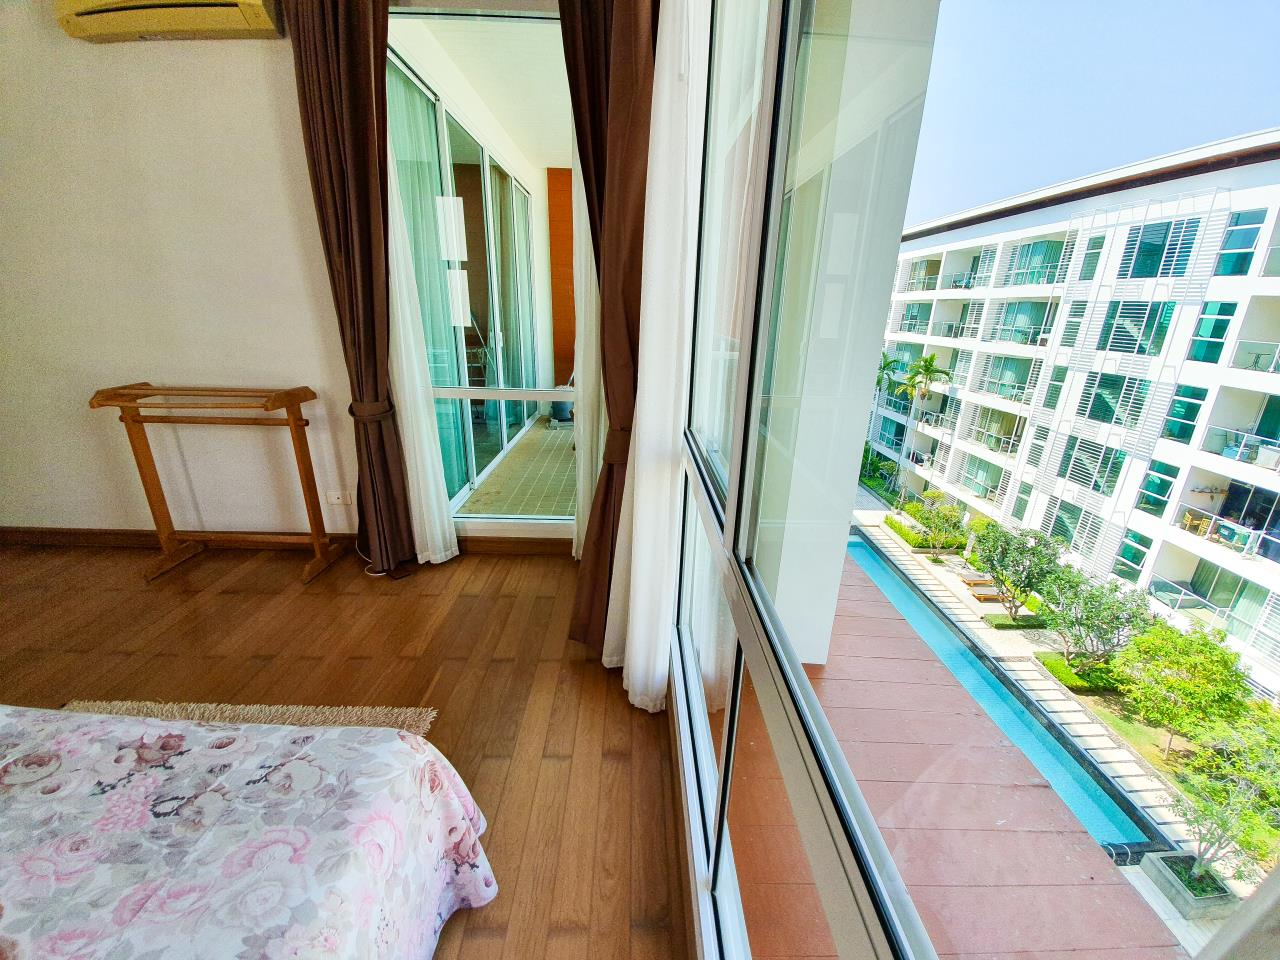 HOME - Real Estate Service Agency's The Breeze Hua Hin / 2 Beds (FOR RENT), เดอะ บรีซ หัวหิน / 2 ห้องนอน (ให้เช่า) T008 11